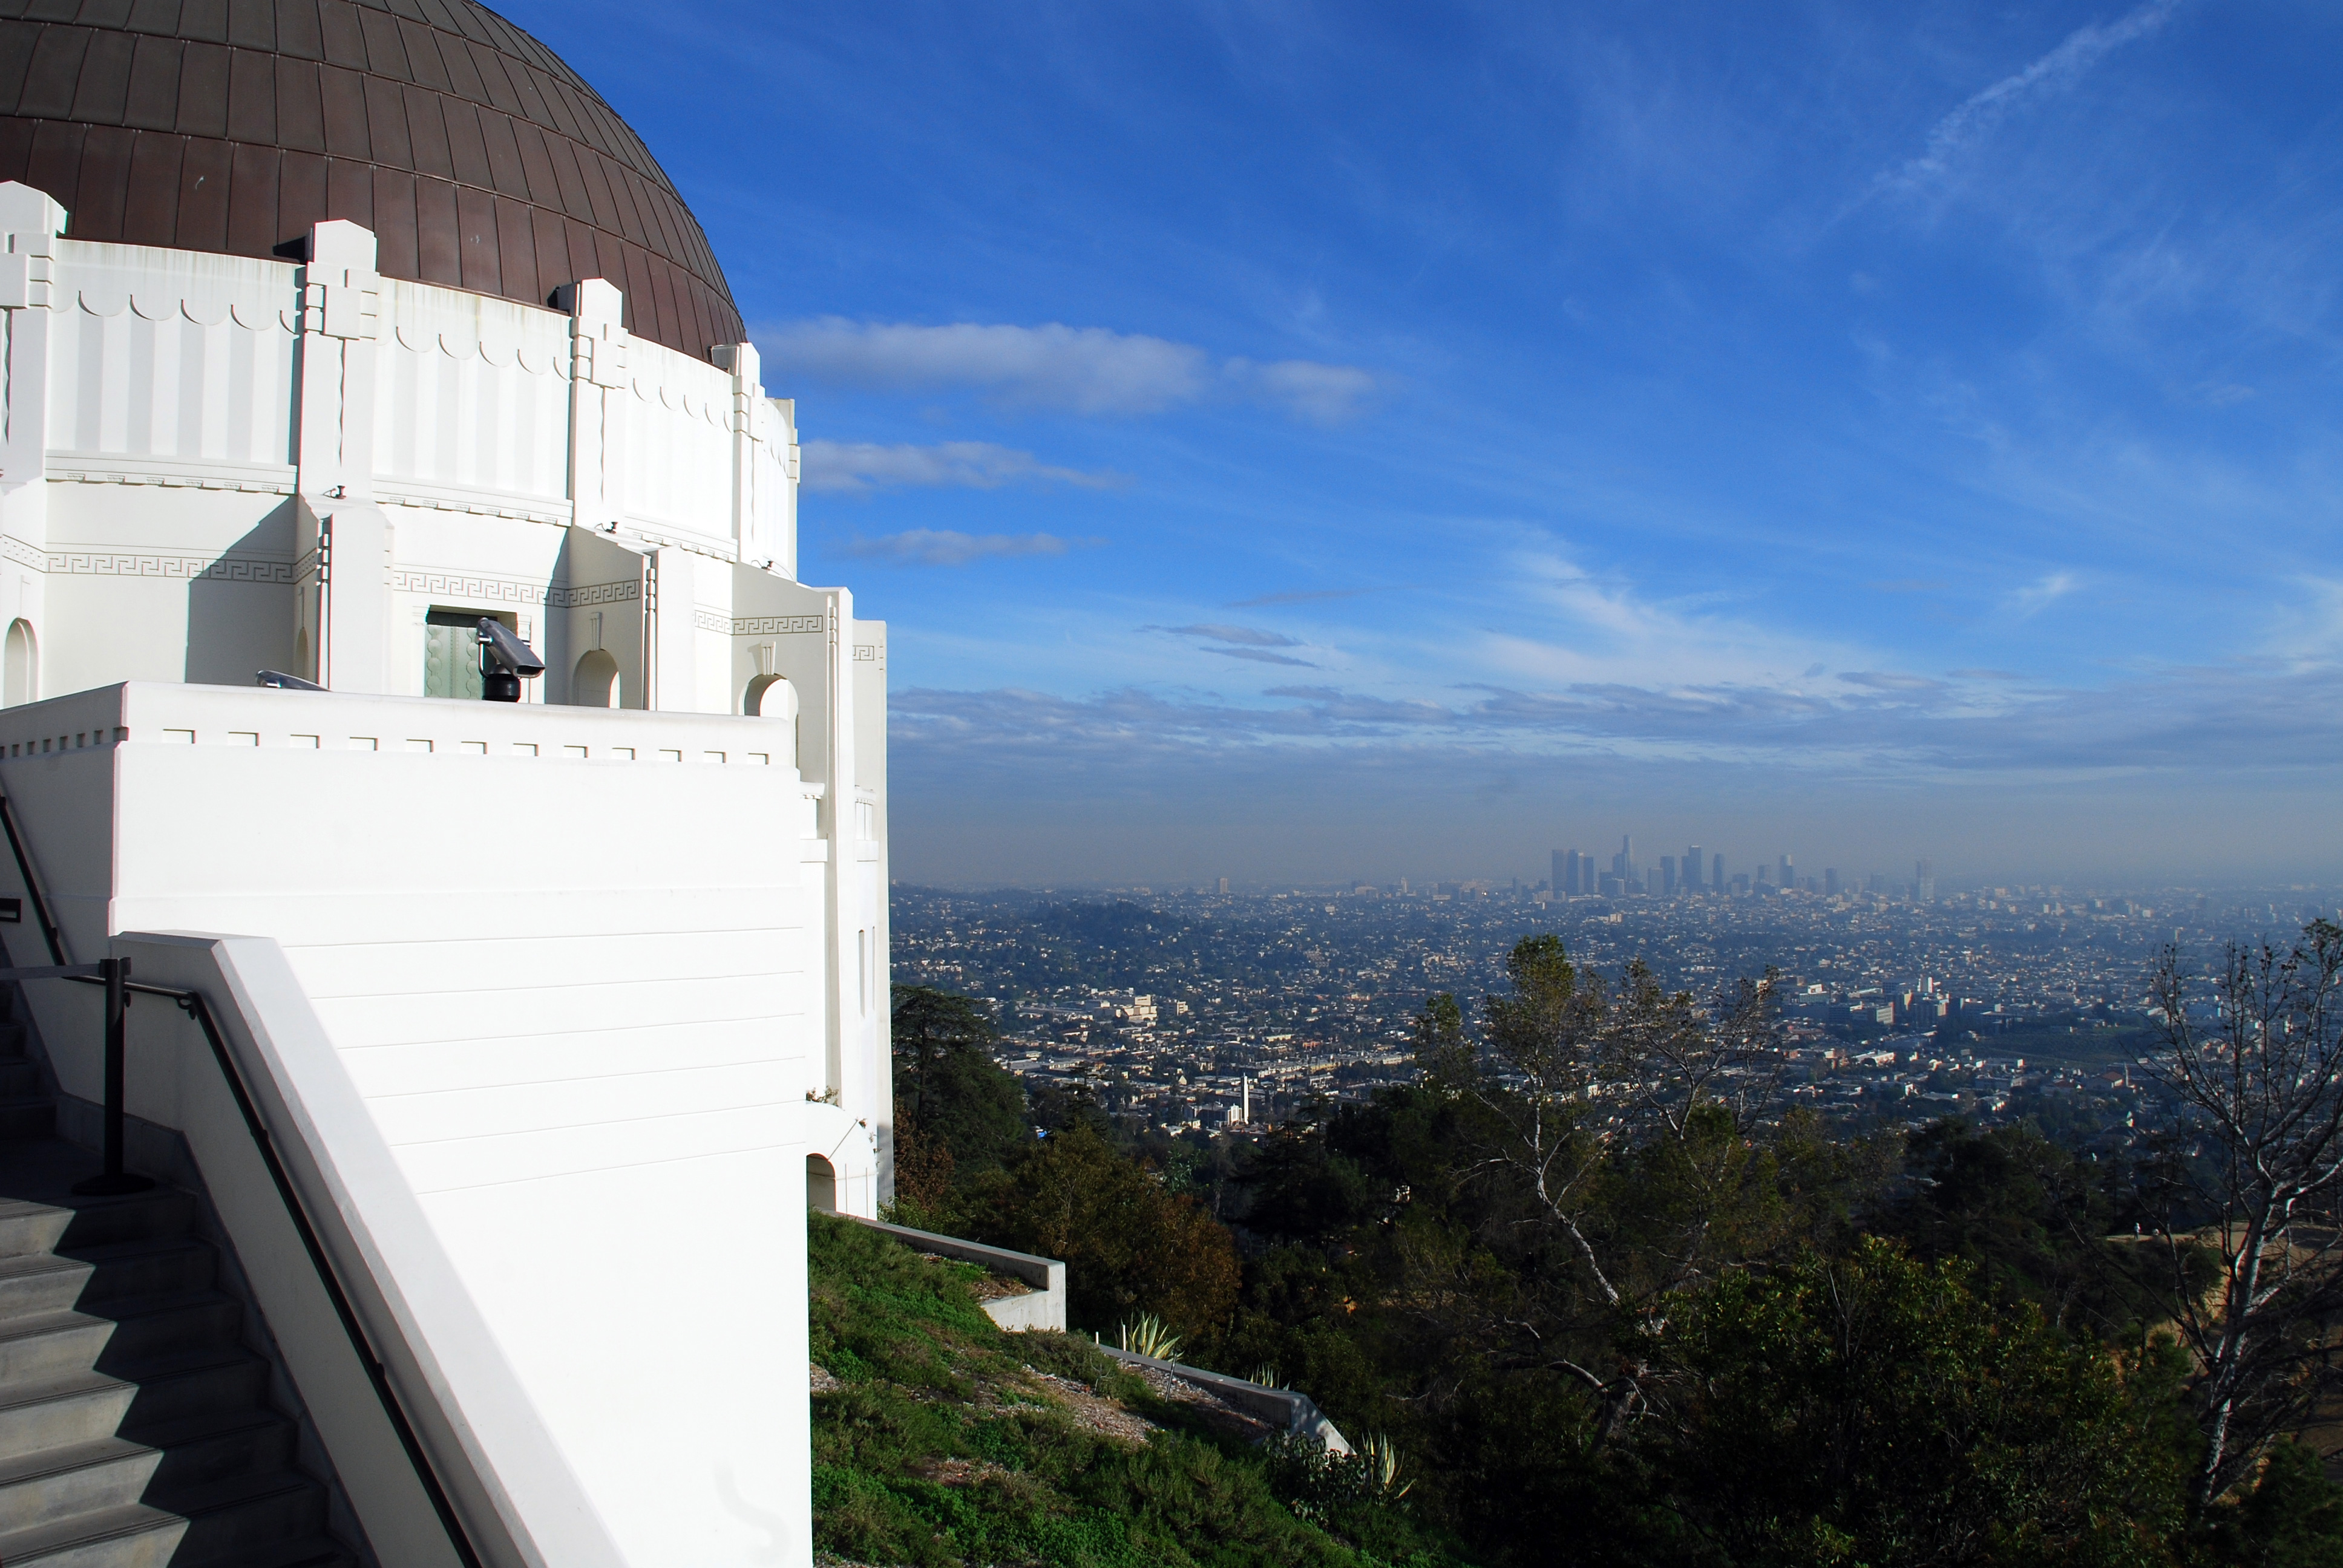 Great Escape Viagens e Turismo - Griffith Observatory, Los Angeles, California